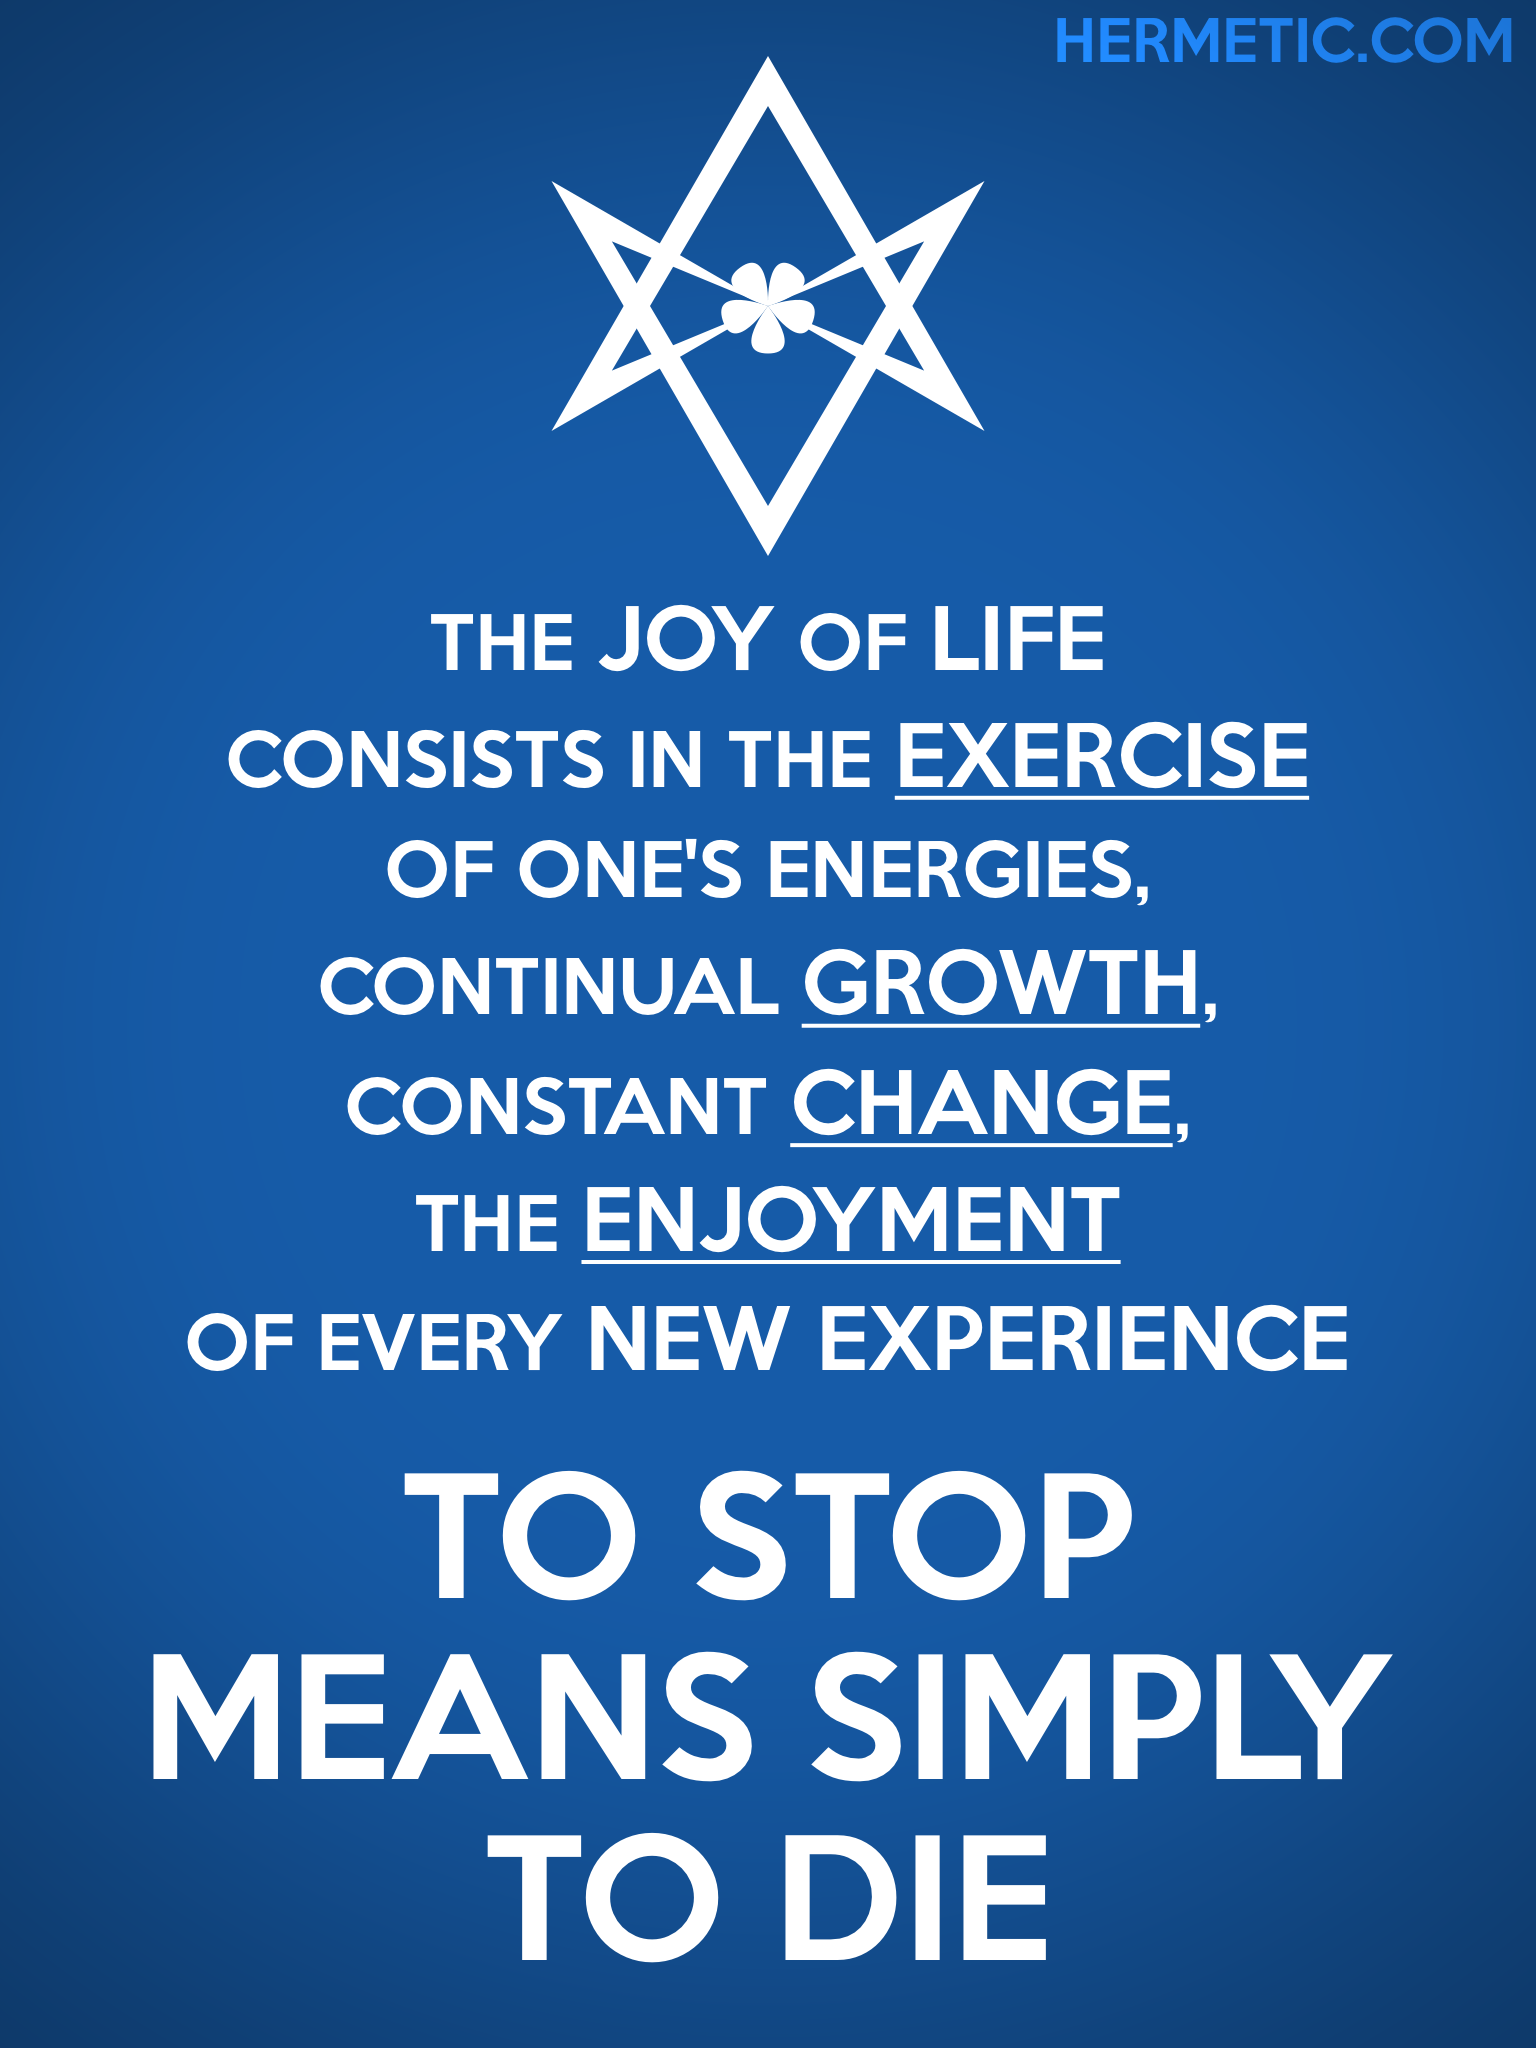 Unicursal THE JOY OF LIFE Propaganda Poster from Hermetic Library Office of the Ministry of Information